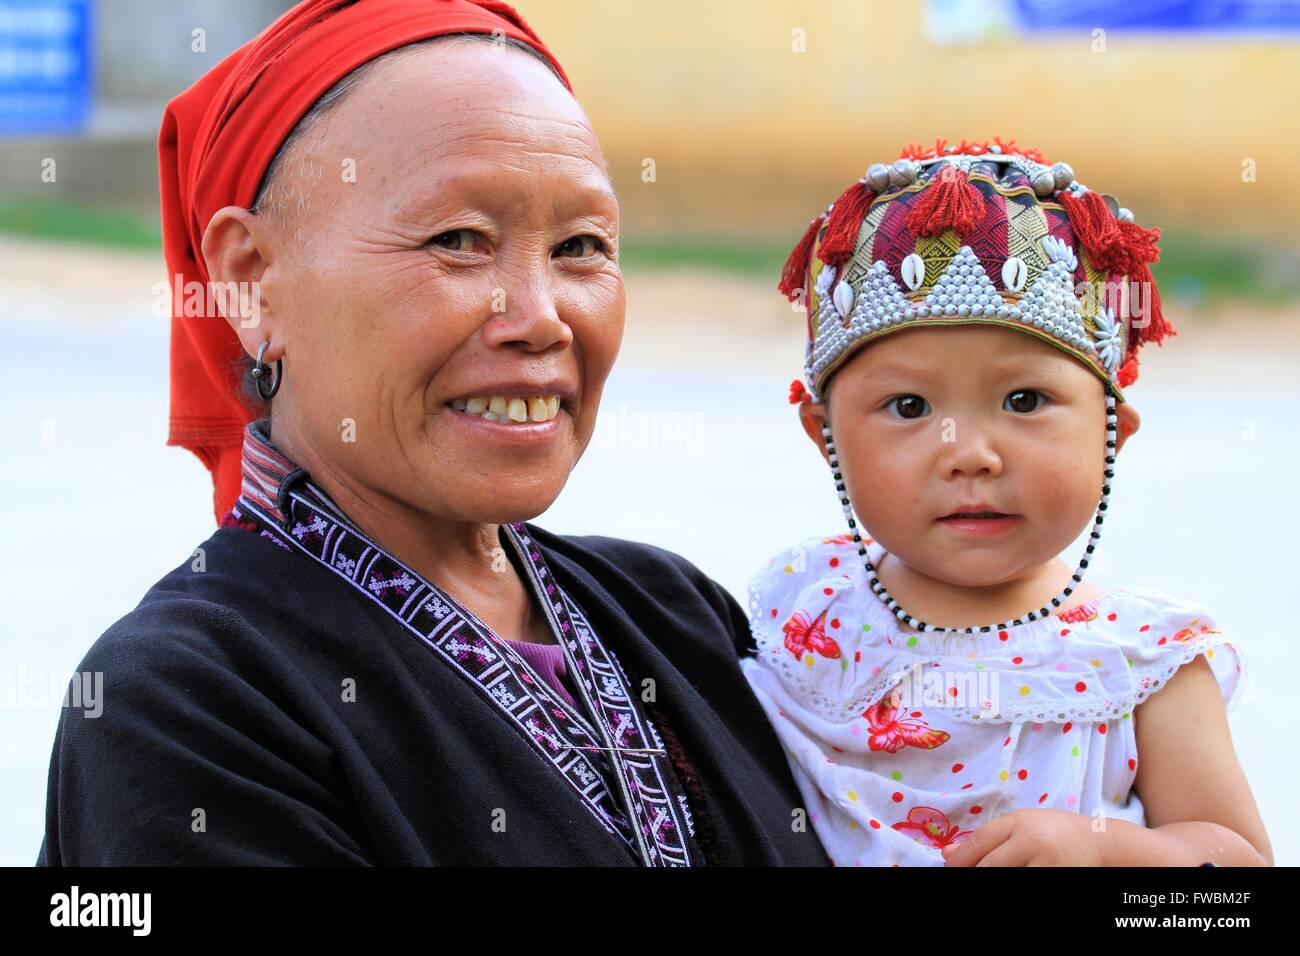 Portrait of smiling Red Dao woman and child, Sapa Surroundings, Vietnam, Asia Stock Photo